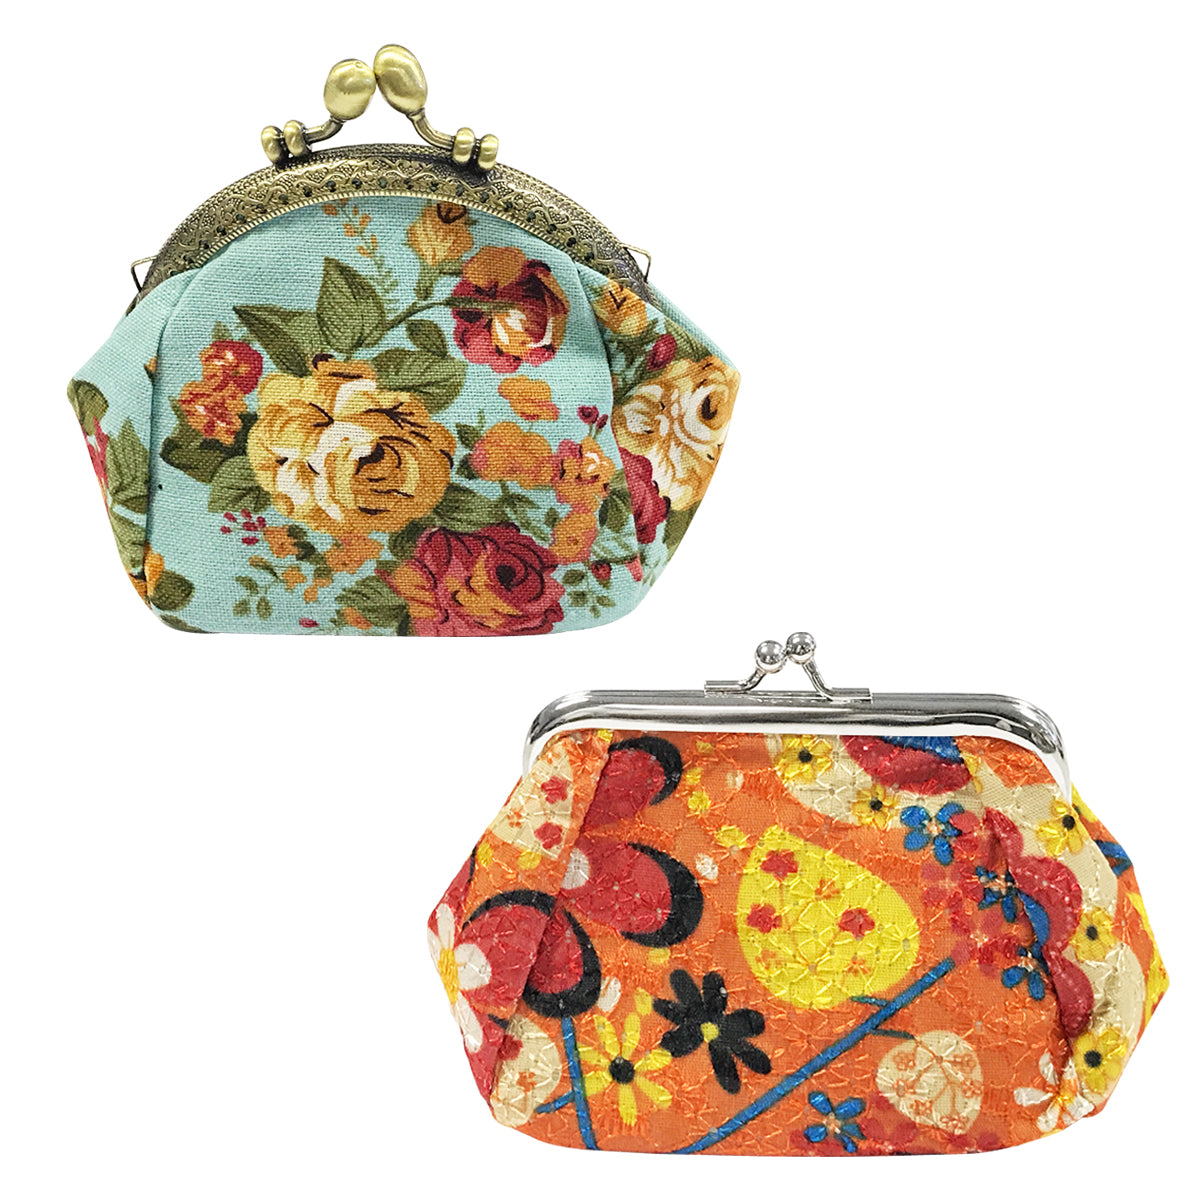 Wrapables Canvas and Embroidered Floral Coin Purse Clutch Wallet (Set of 2)